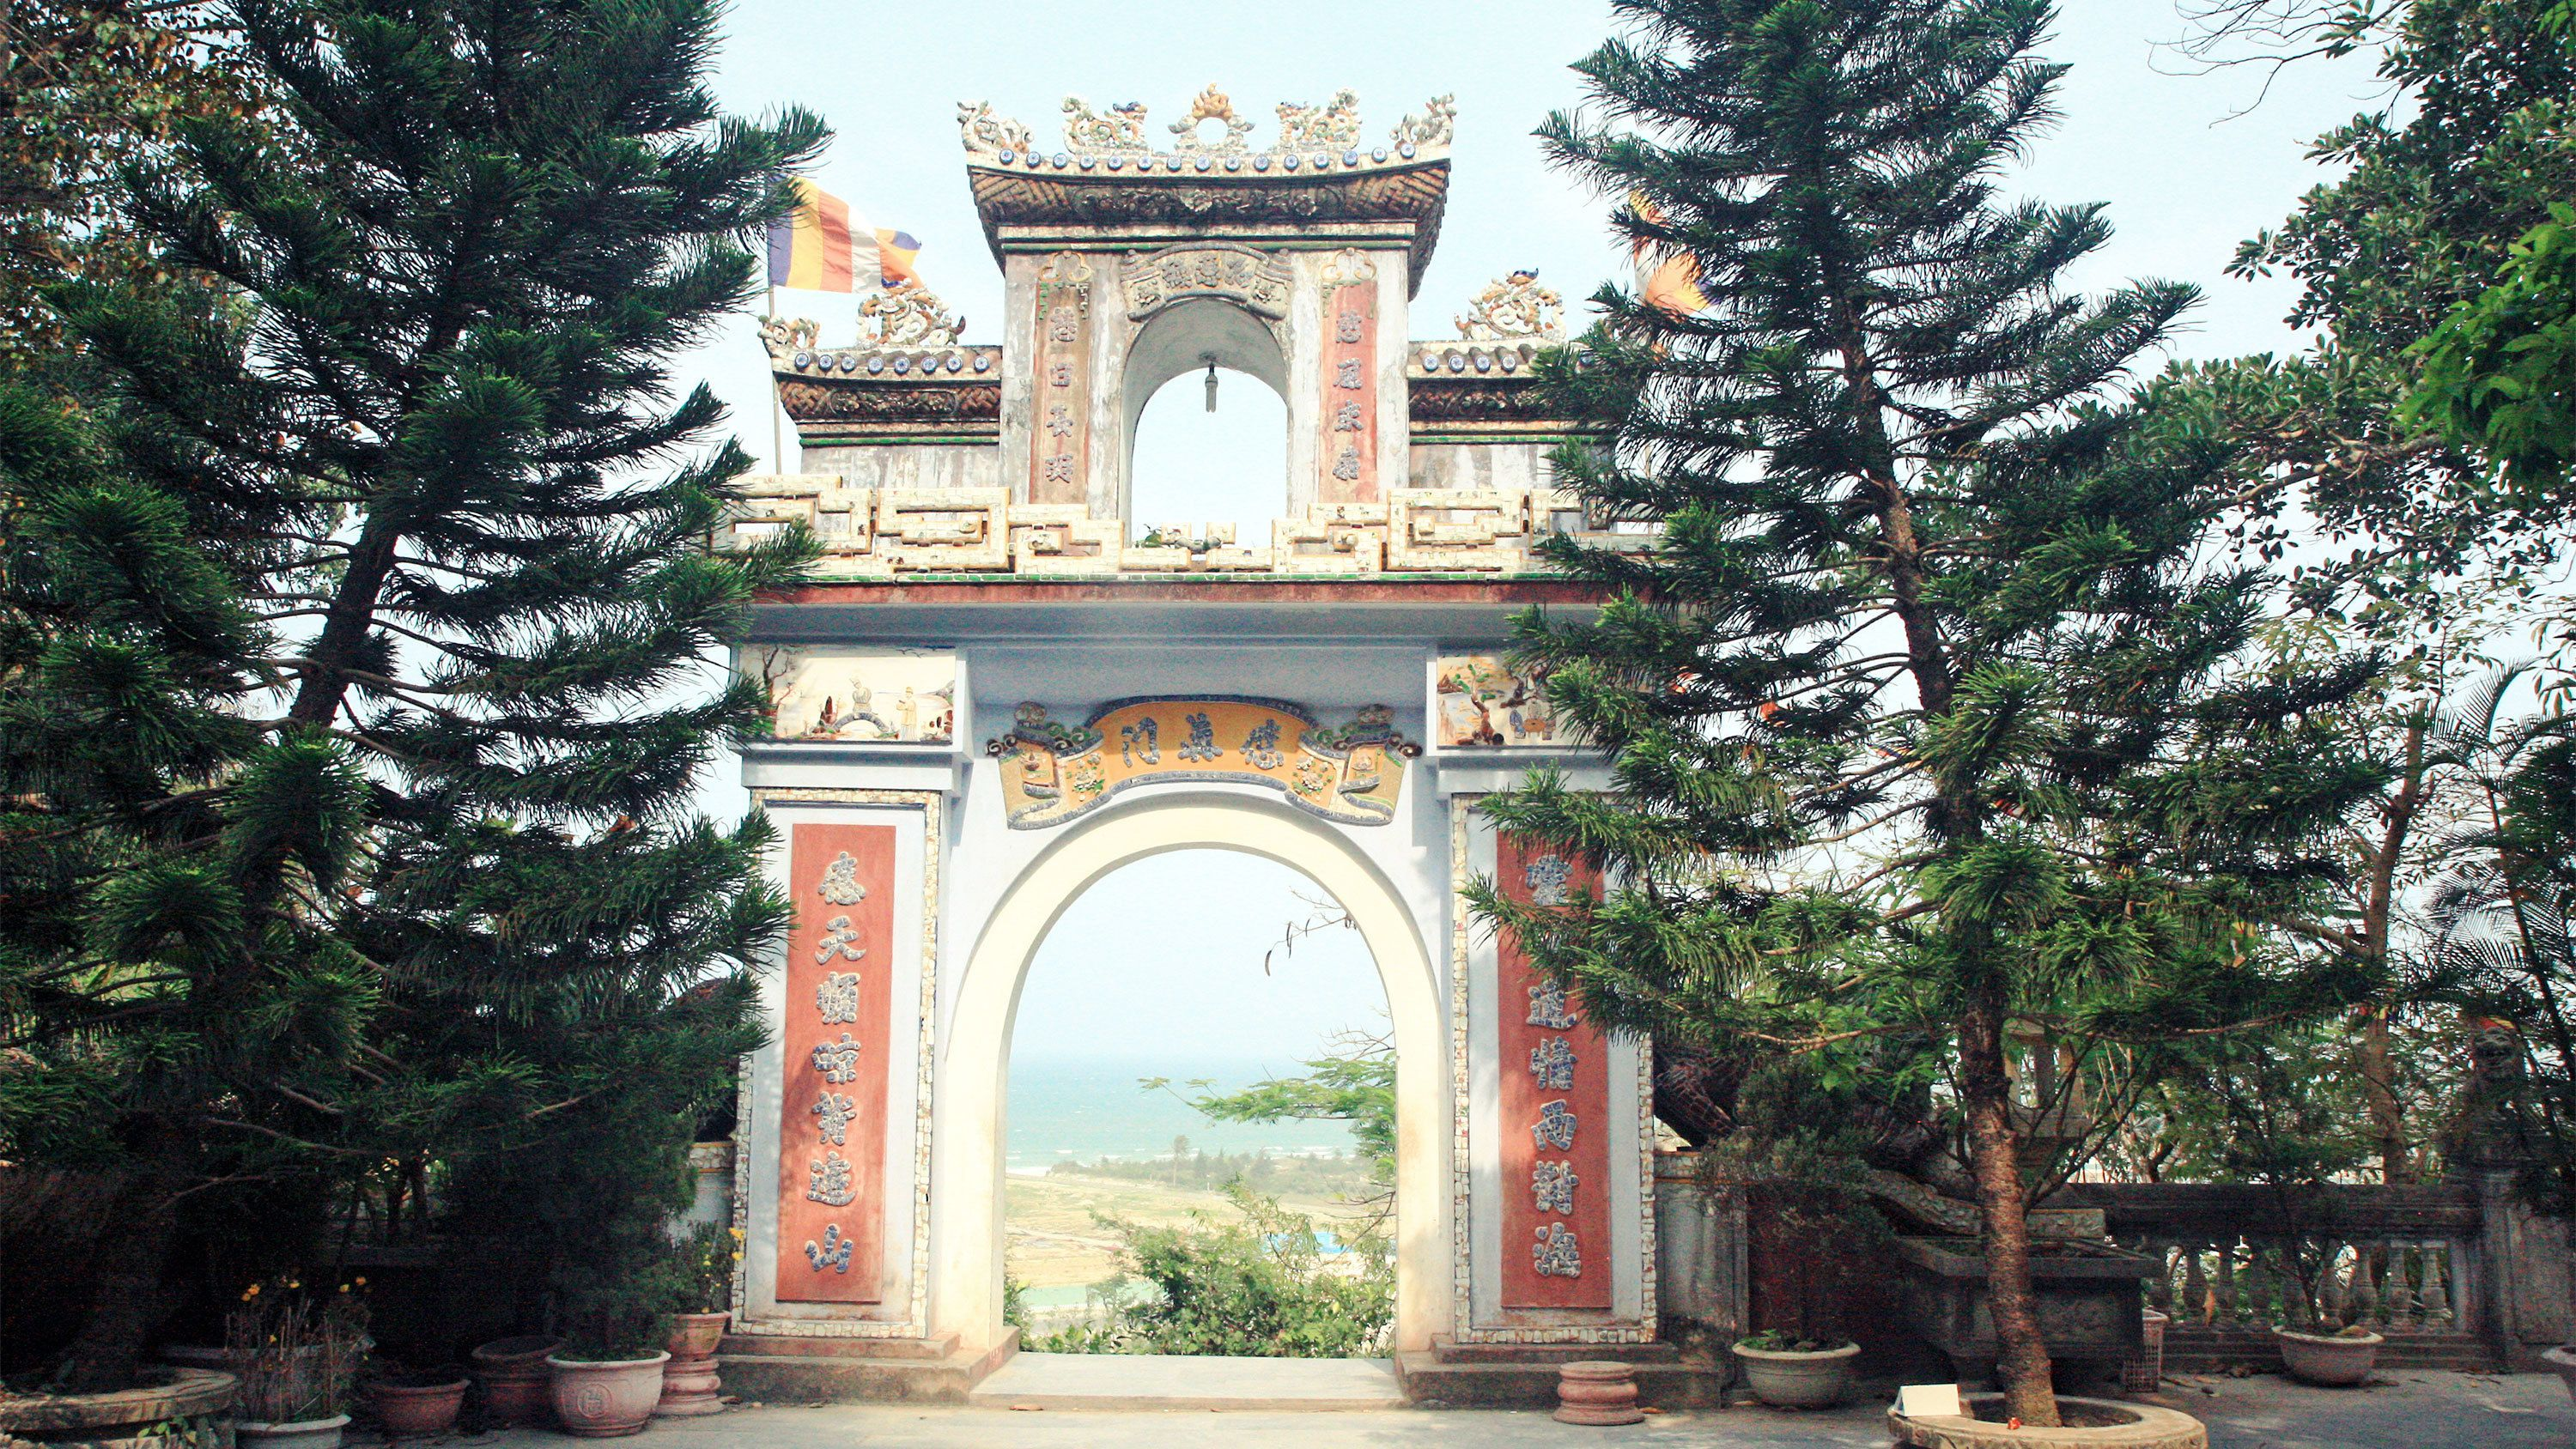 Gate at the Marble Mountain - Linh Ung Pagoda in Hanoi, Vietnam